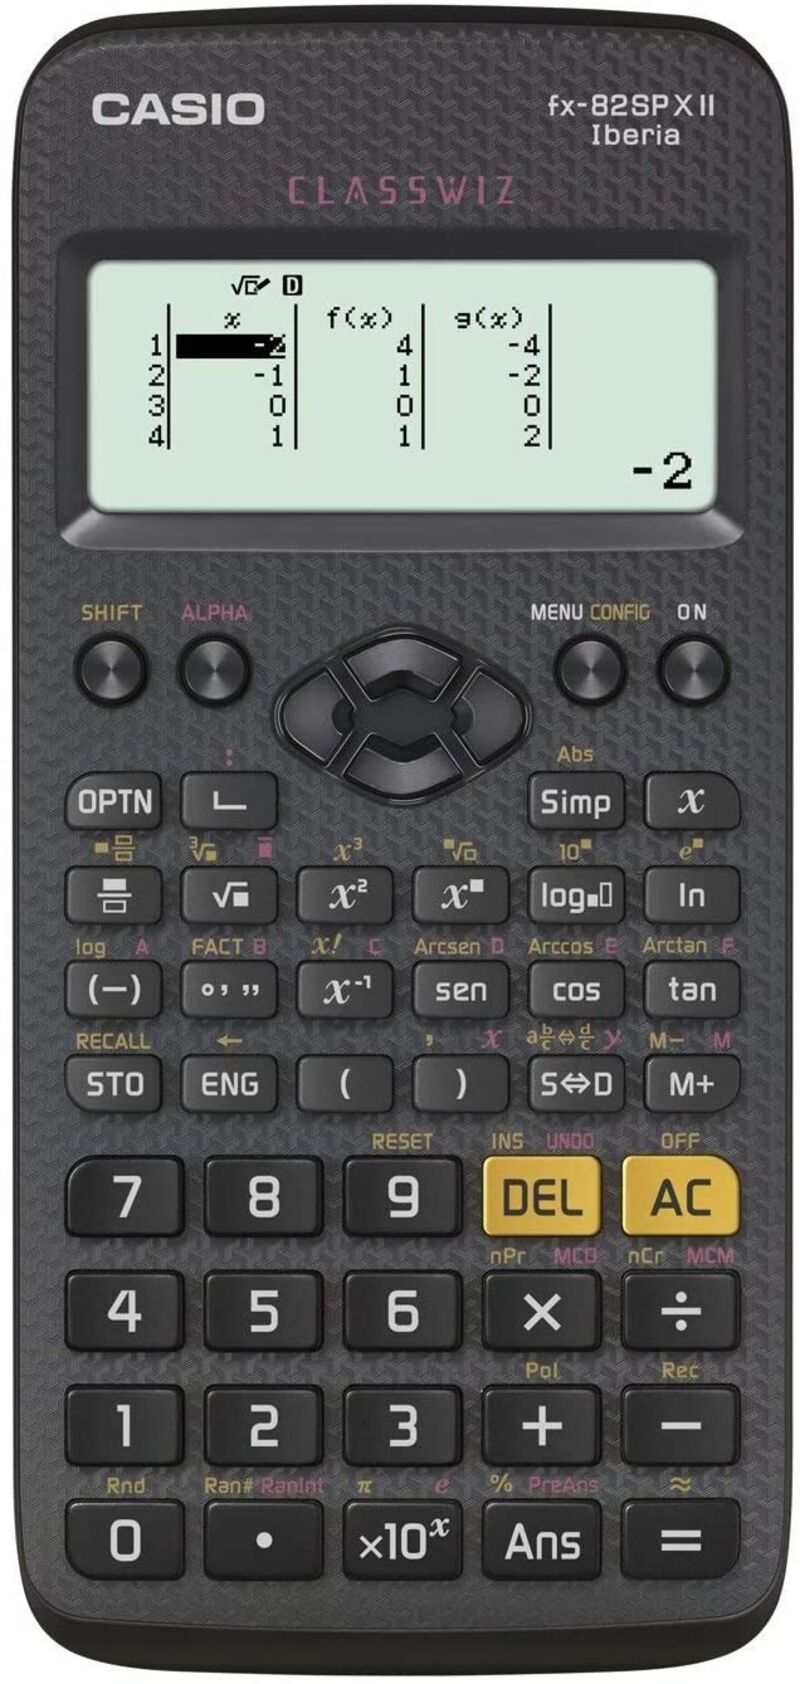 CALCULADORA FX 82SP XII CASIO